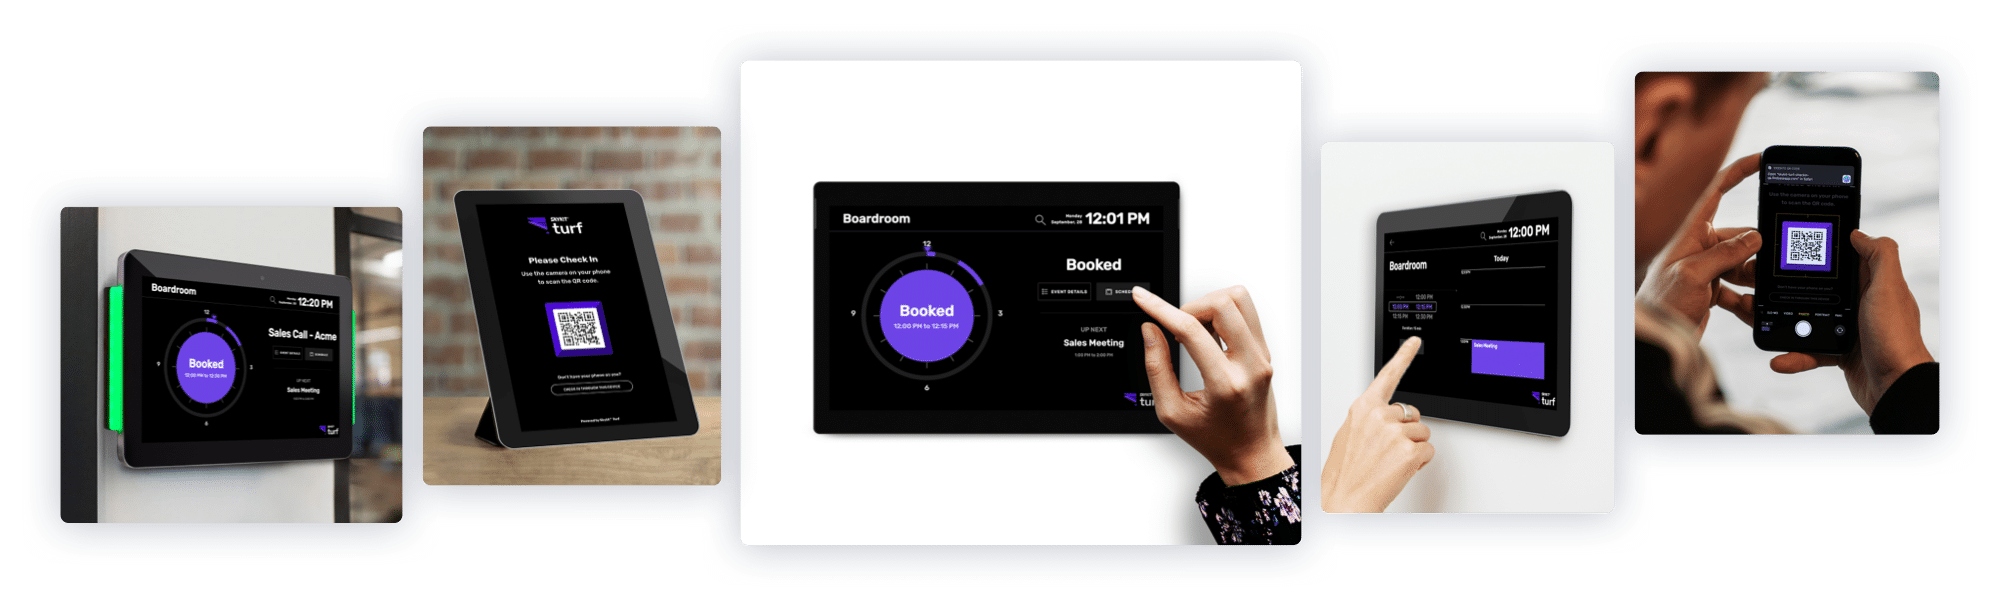 Skykit Turf - Space reservation software and employee and visitor management systems